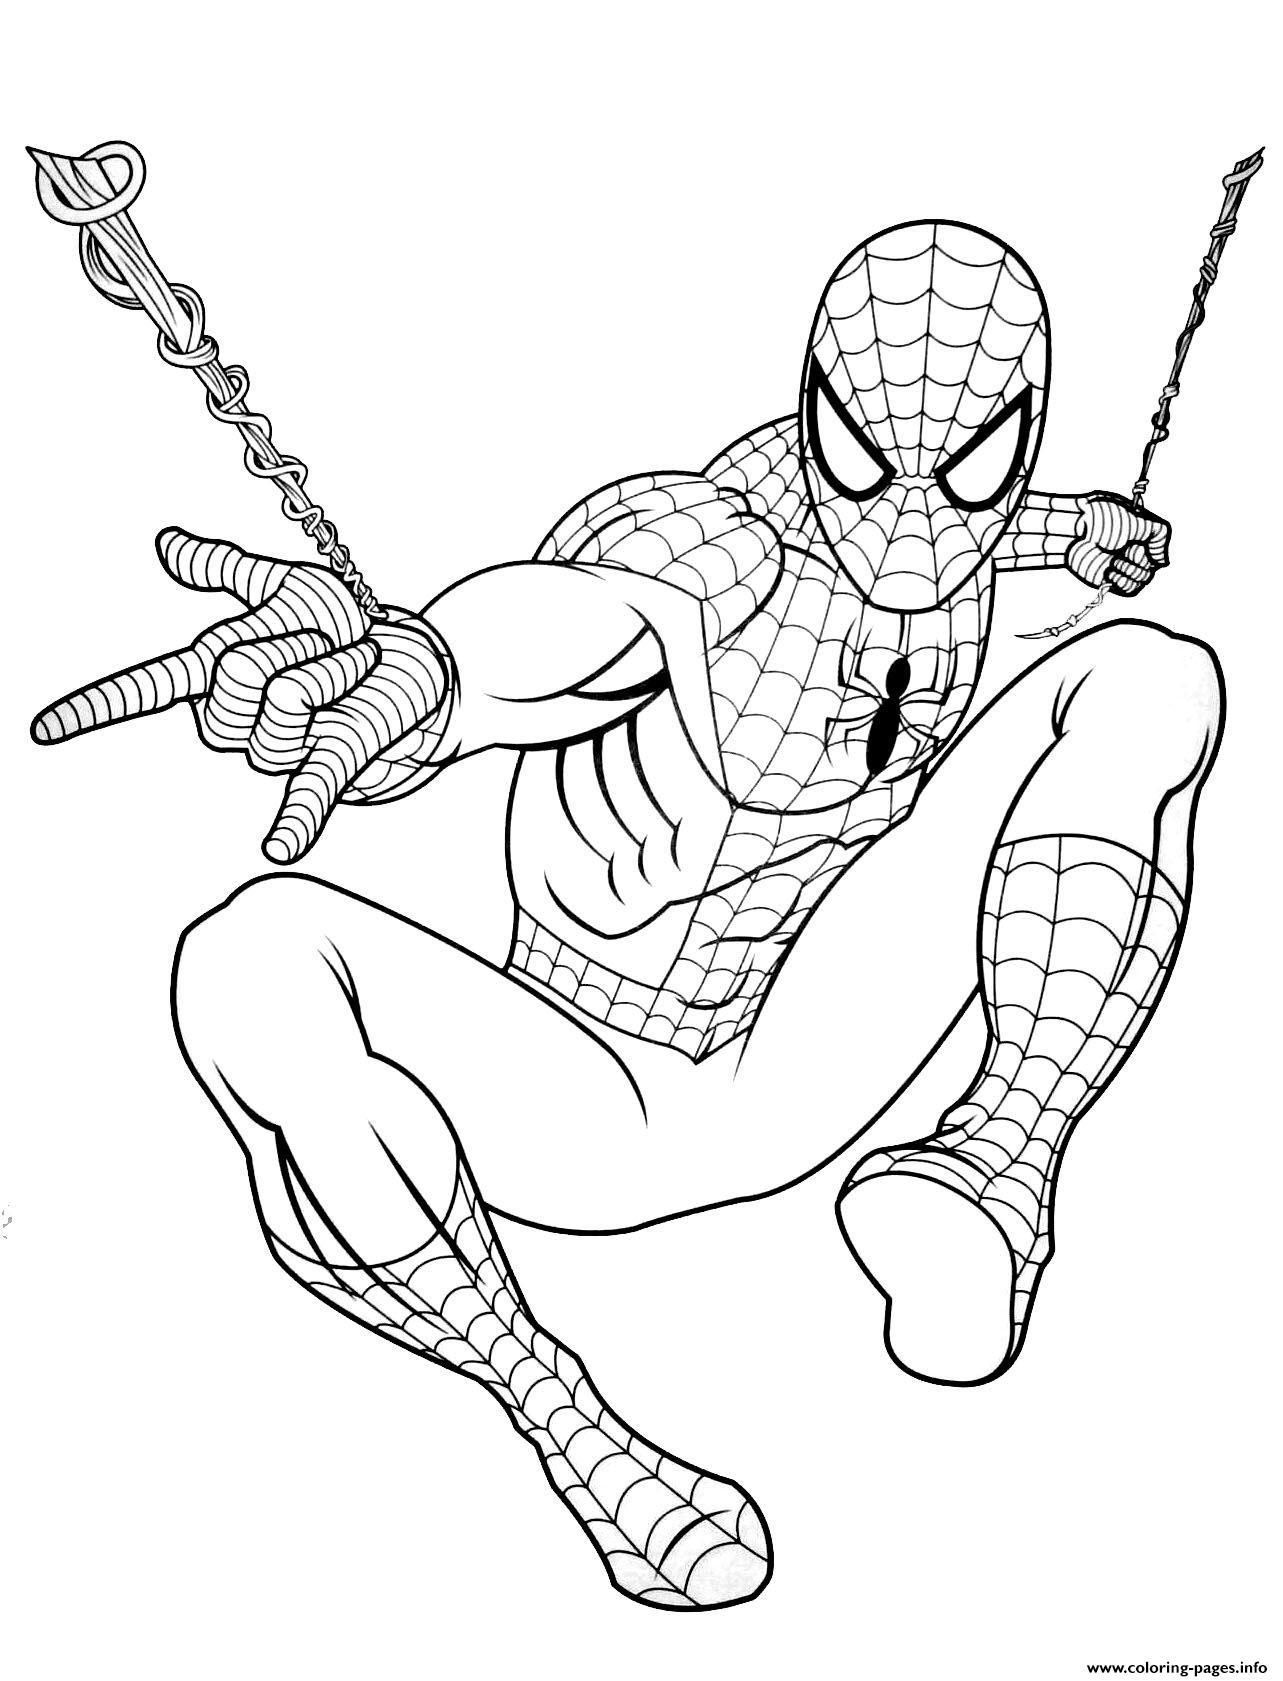 38 Coloring Page Spider Man Far From Home Avengers Coloring Pages Cartoon Coloring Pages Spiderman Drawing